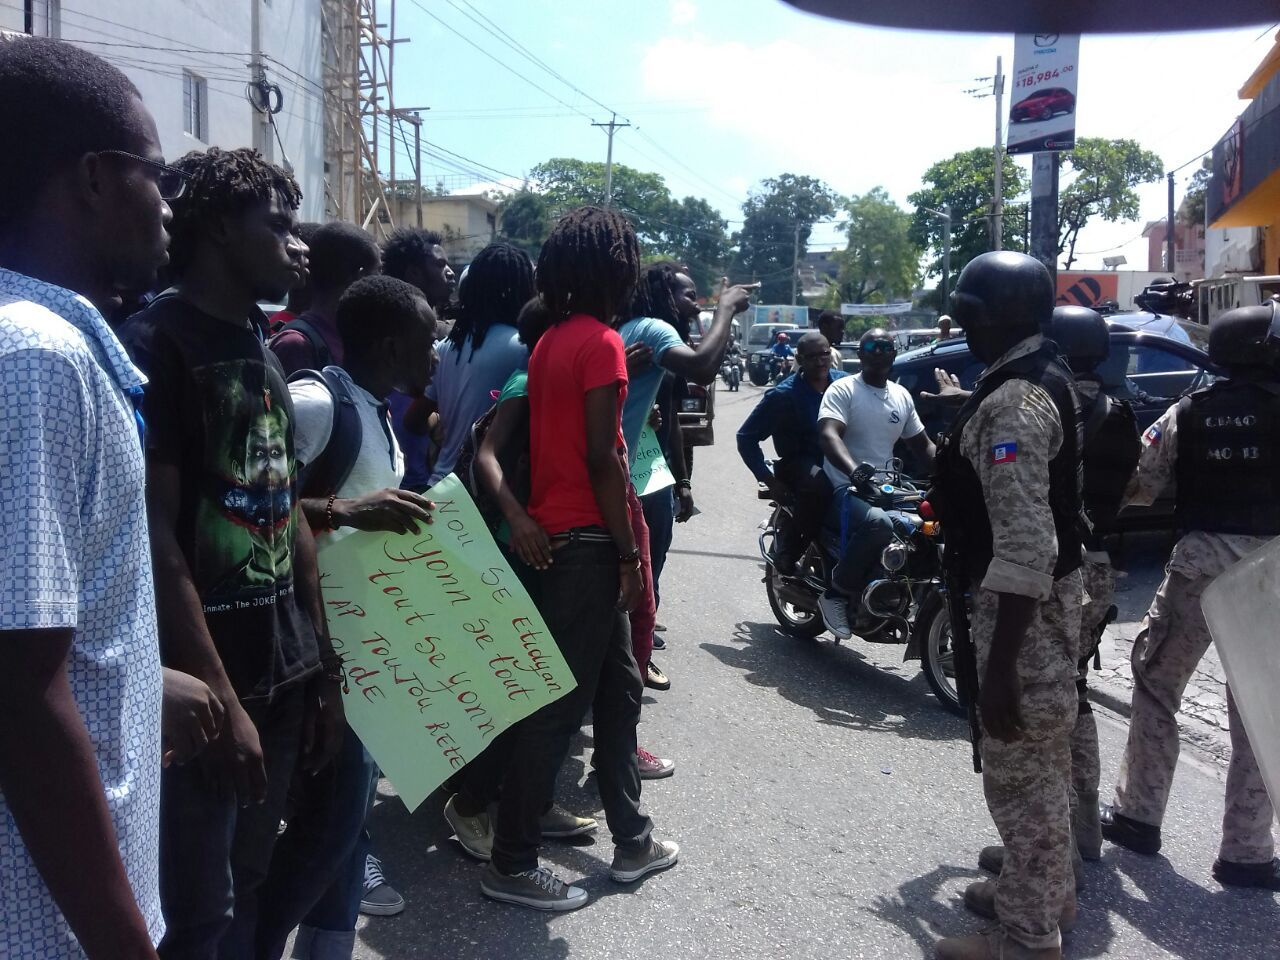 """HaitiInfoProject on Twitter: """"Stand-off btwn police & student protesters yesterday in PAP, #Haiti. Students blocked roads accusing  pres. #Moise of drug trafficking. https://t.co/xKH6VTQgrf"""""""